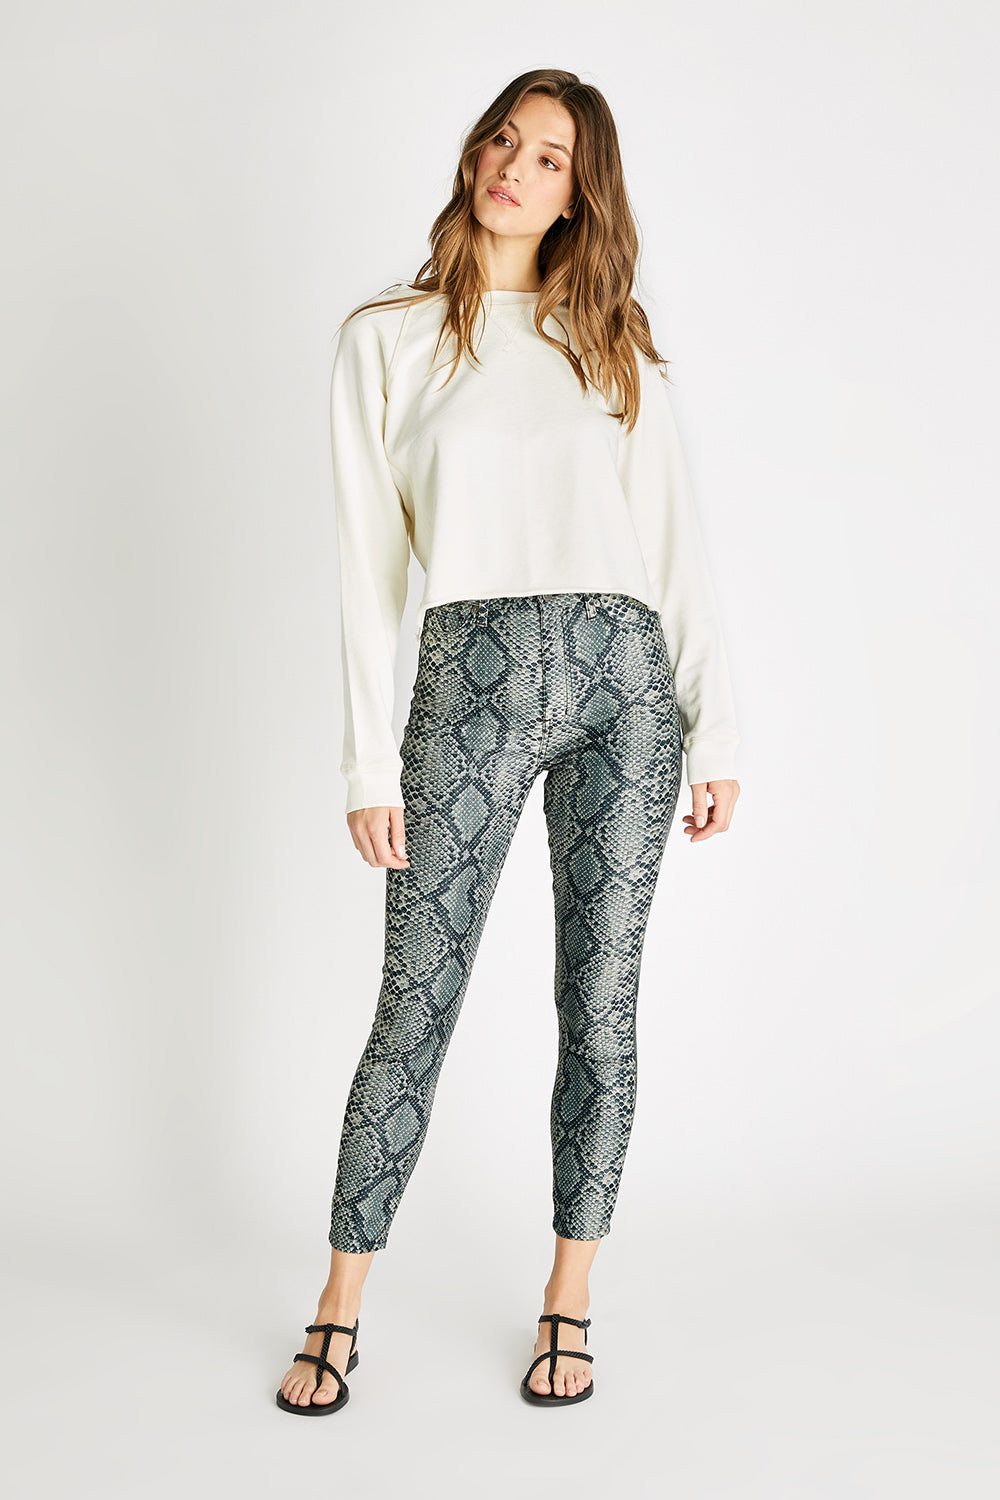 Cindy High Rise Skinny Legging - Olive Snake